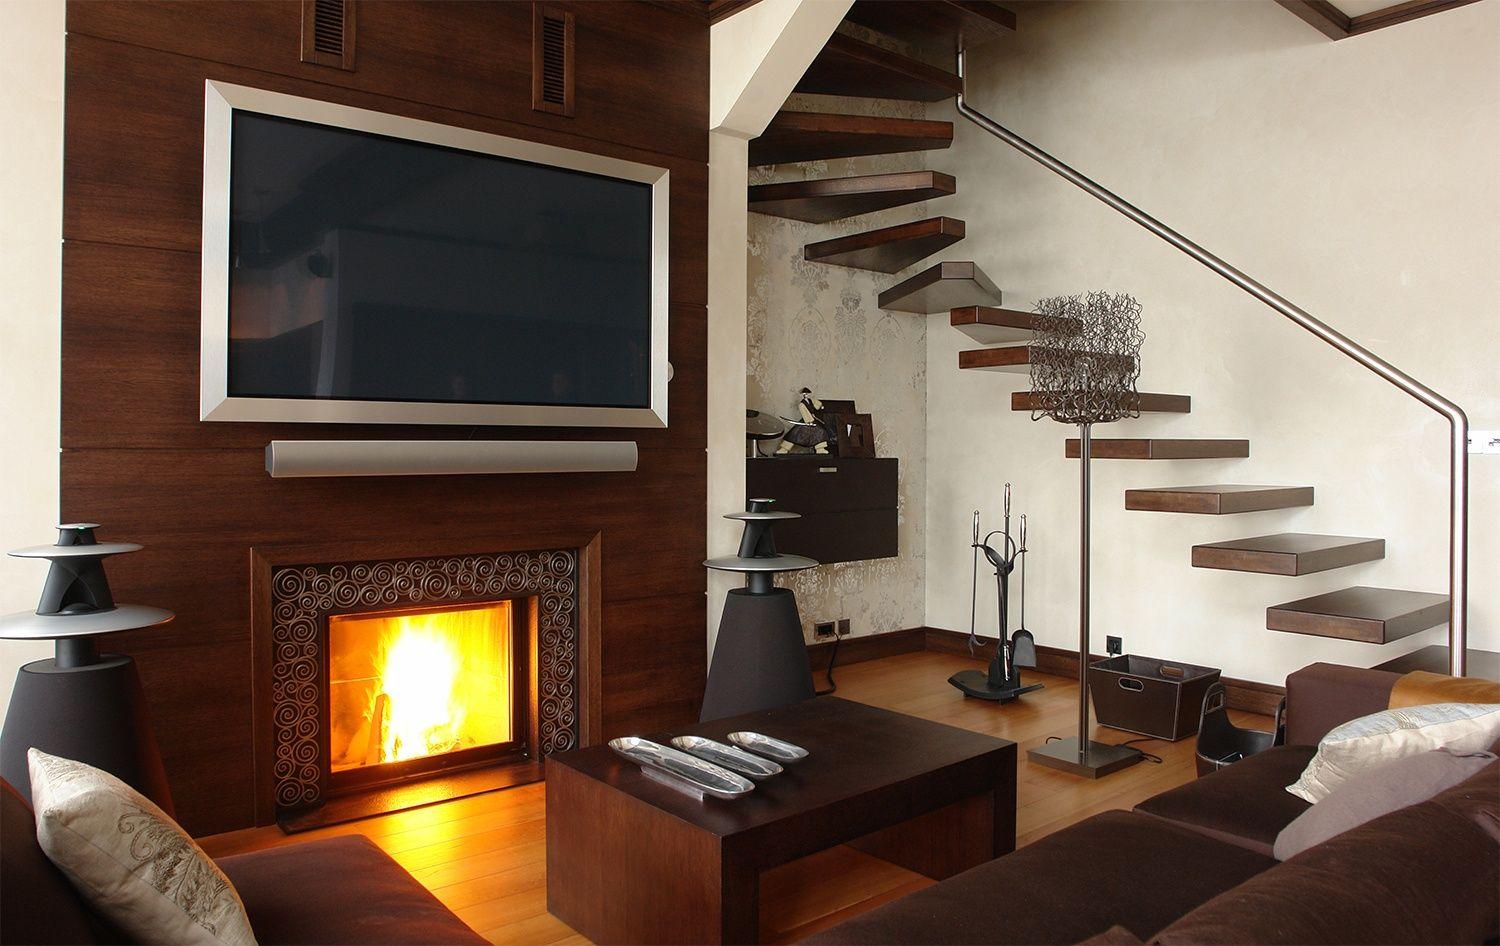 Wohnzimmer Tv ~ Icdn digitaltrends image tv over fireplace